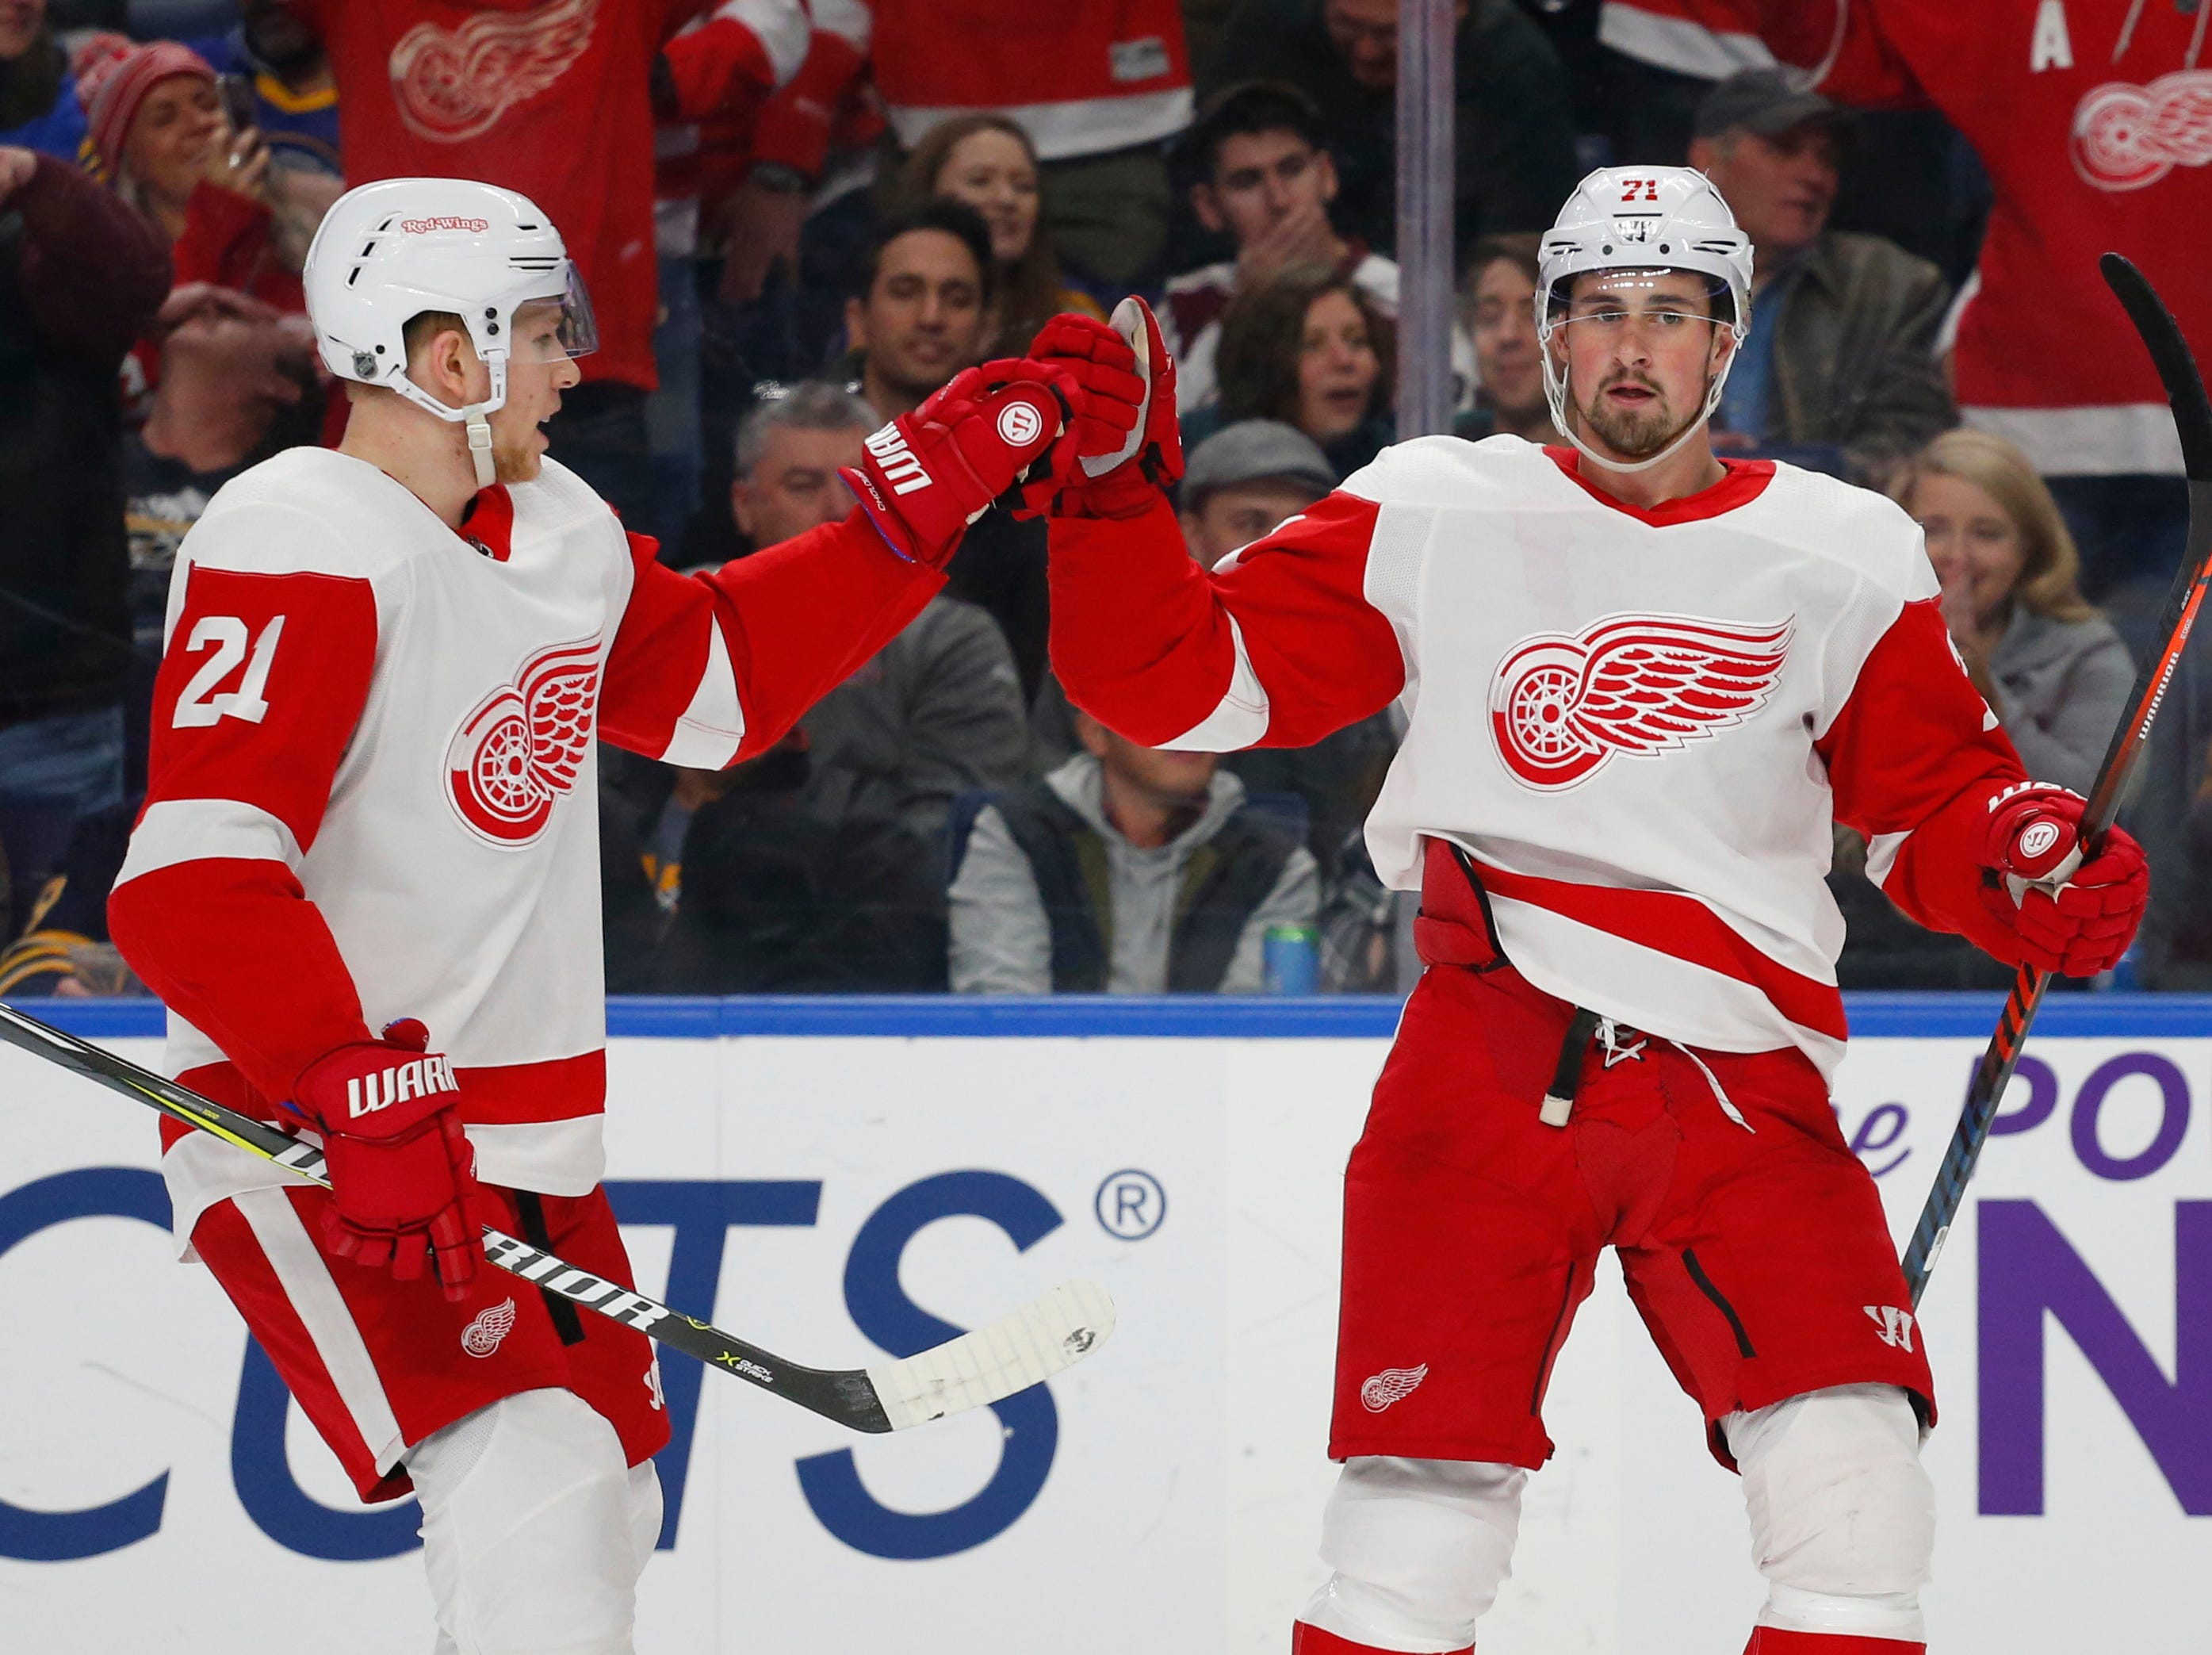 Red Wings defenseman Dennis Cholowski, left, and forward Dylan Larkin celebrate a goal during the second period of the Wings' 3-1 loss on Saturday, Feb. 9, 2019, in Buffalo N.Y.